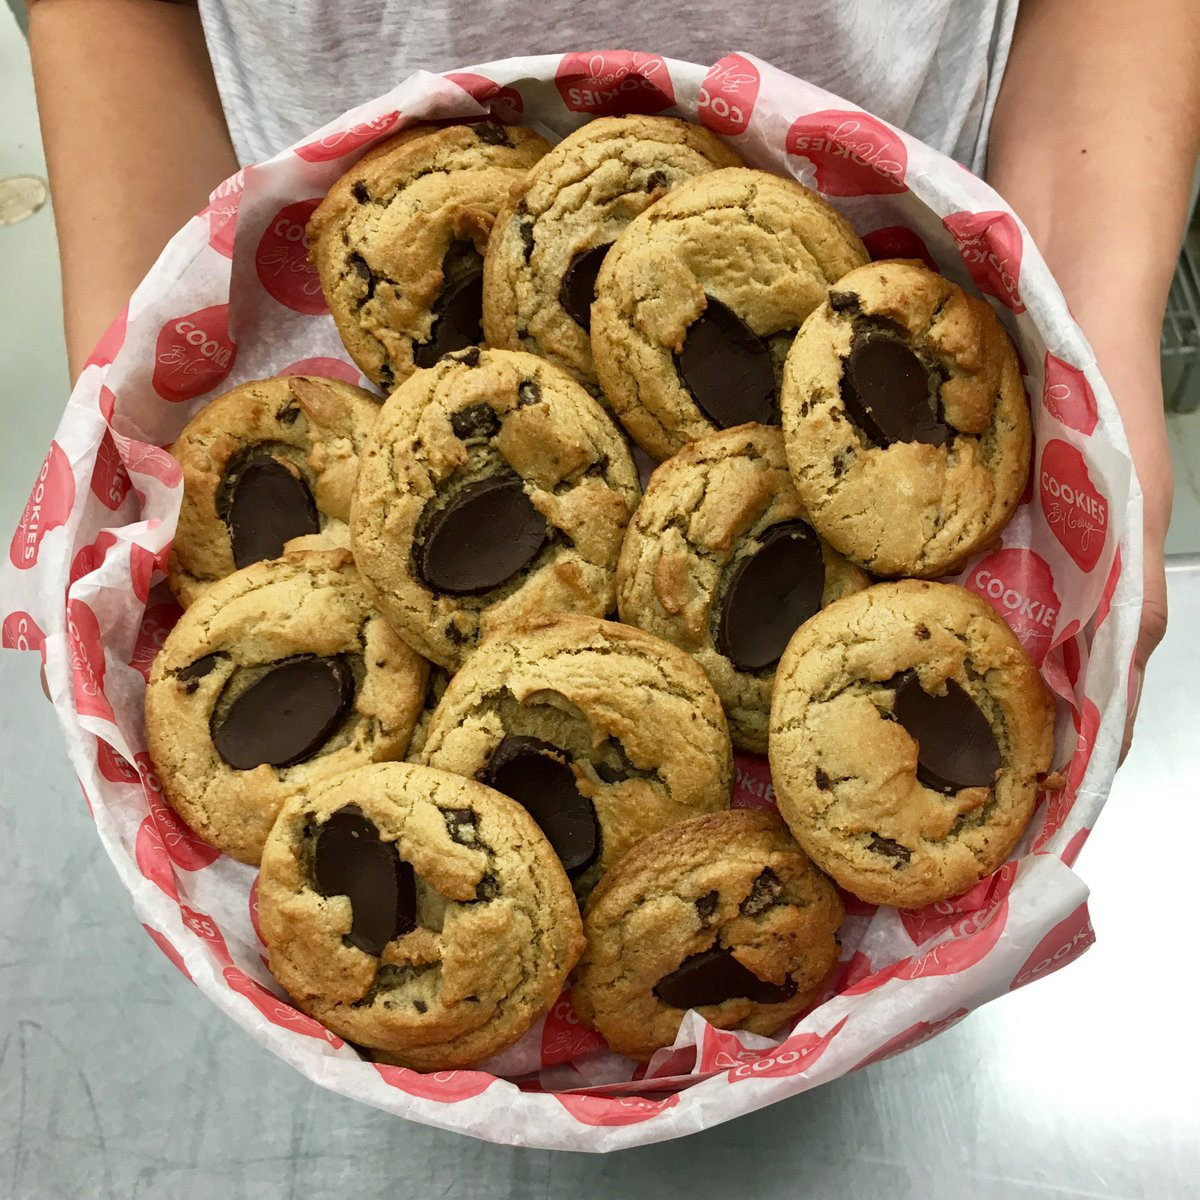 Happy #NationalChocolateChipDay! We want to share the #cookie love with a sweet #contest! Follow us & tag a friend who would love to #WIN a GEORGE TIN filled with 24 #Chocolate Chunk #Cookies. #CookiesByGeorge *Contest closes Weds, May 15 @ 5pm MT* #yeg #yyc #yvr #yqr #ywg<br>http://pic.twitter.com/Mhym59iRz3